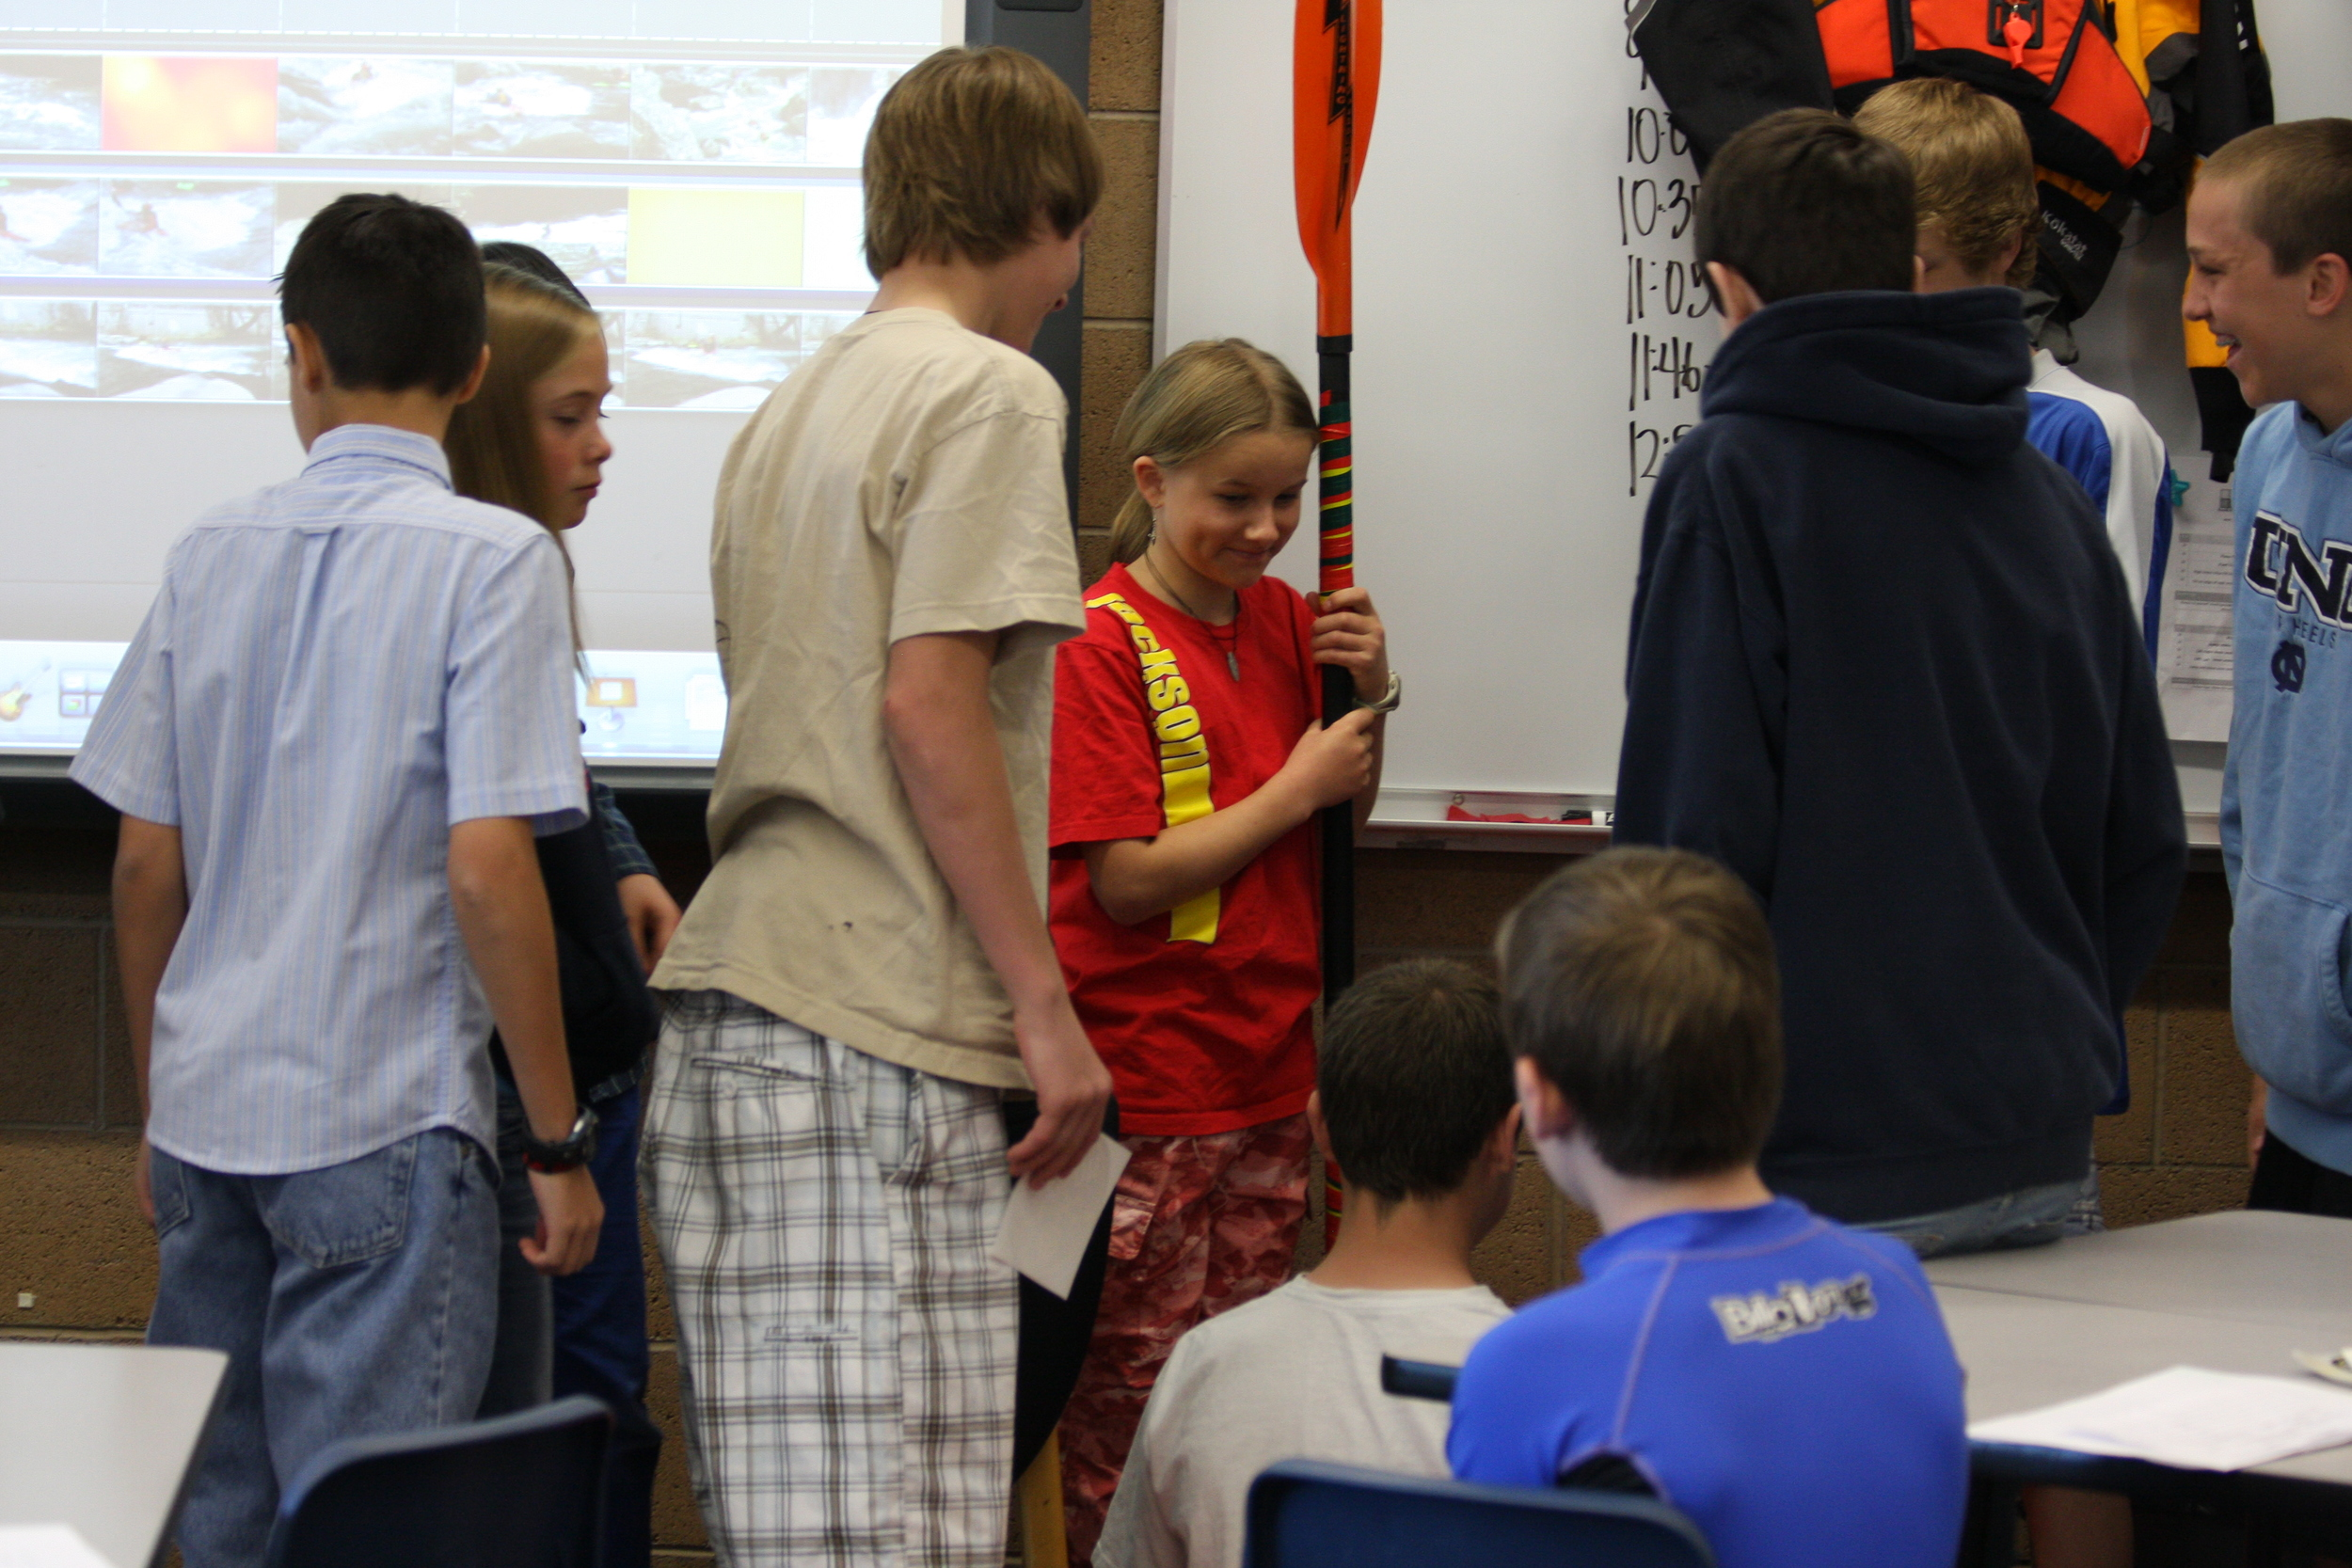 Career Day, Billinghurst Middle School, Reno, NV.